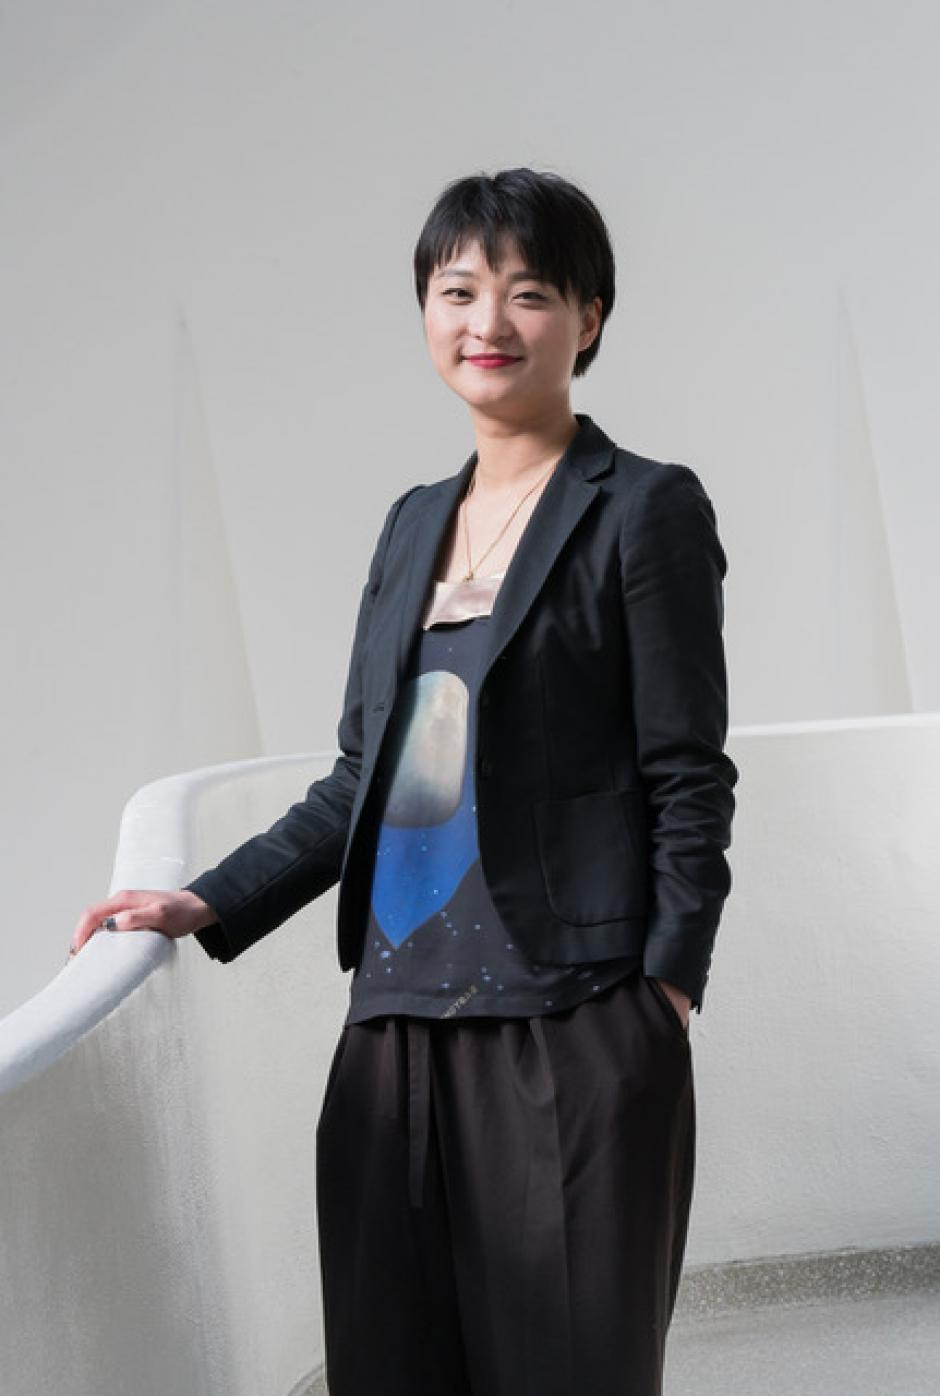 Artist Xiaoyu Weng, to lecture at Banff Centre.